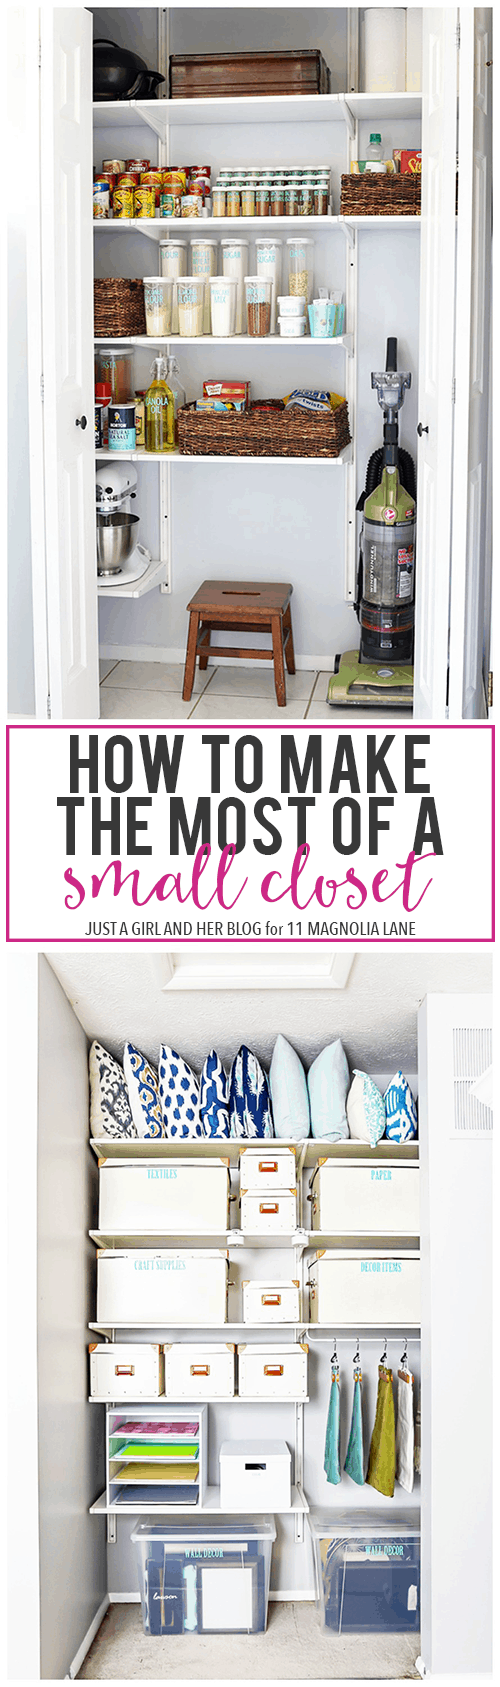 This post is proof that small closets can be neat and organized! Love these organization ideas! | Just a Girl and Her Blog for 11 Magnolia Lane